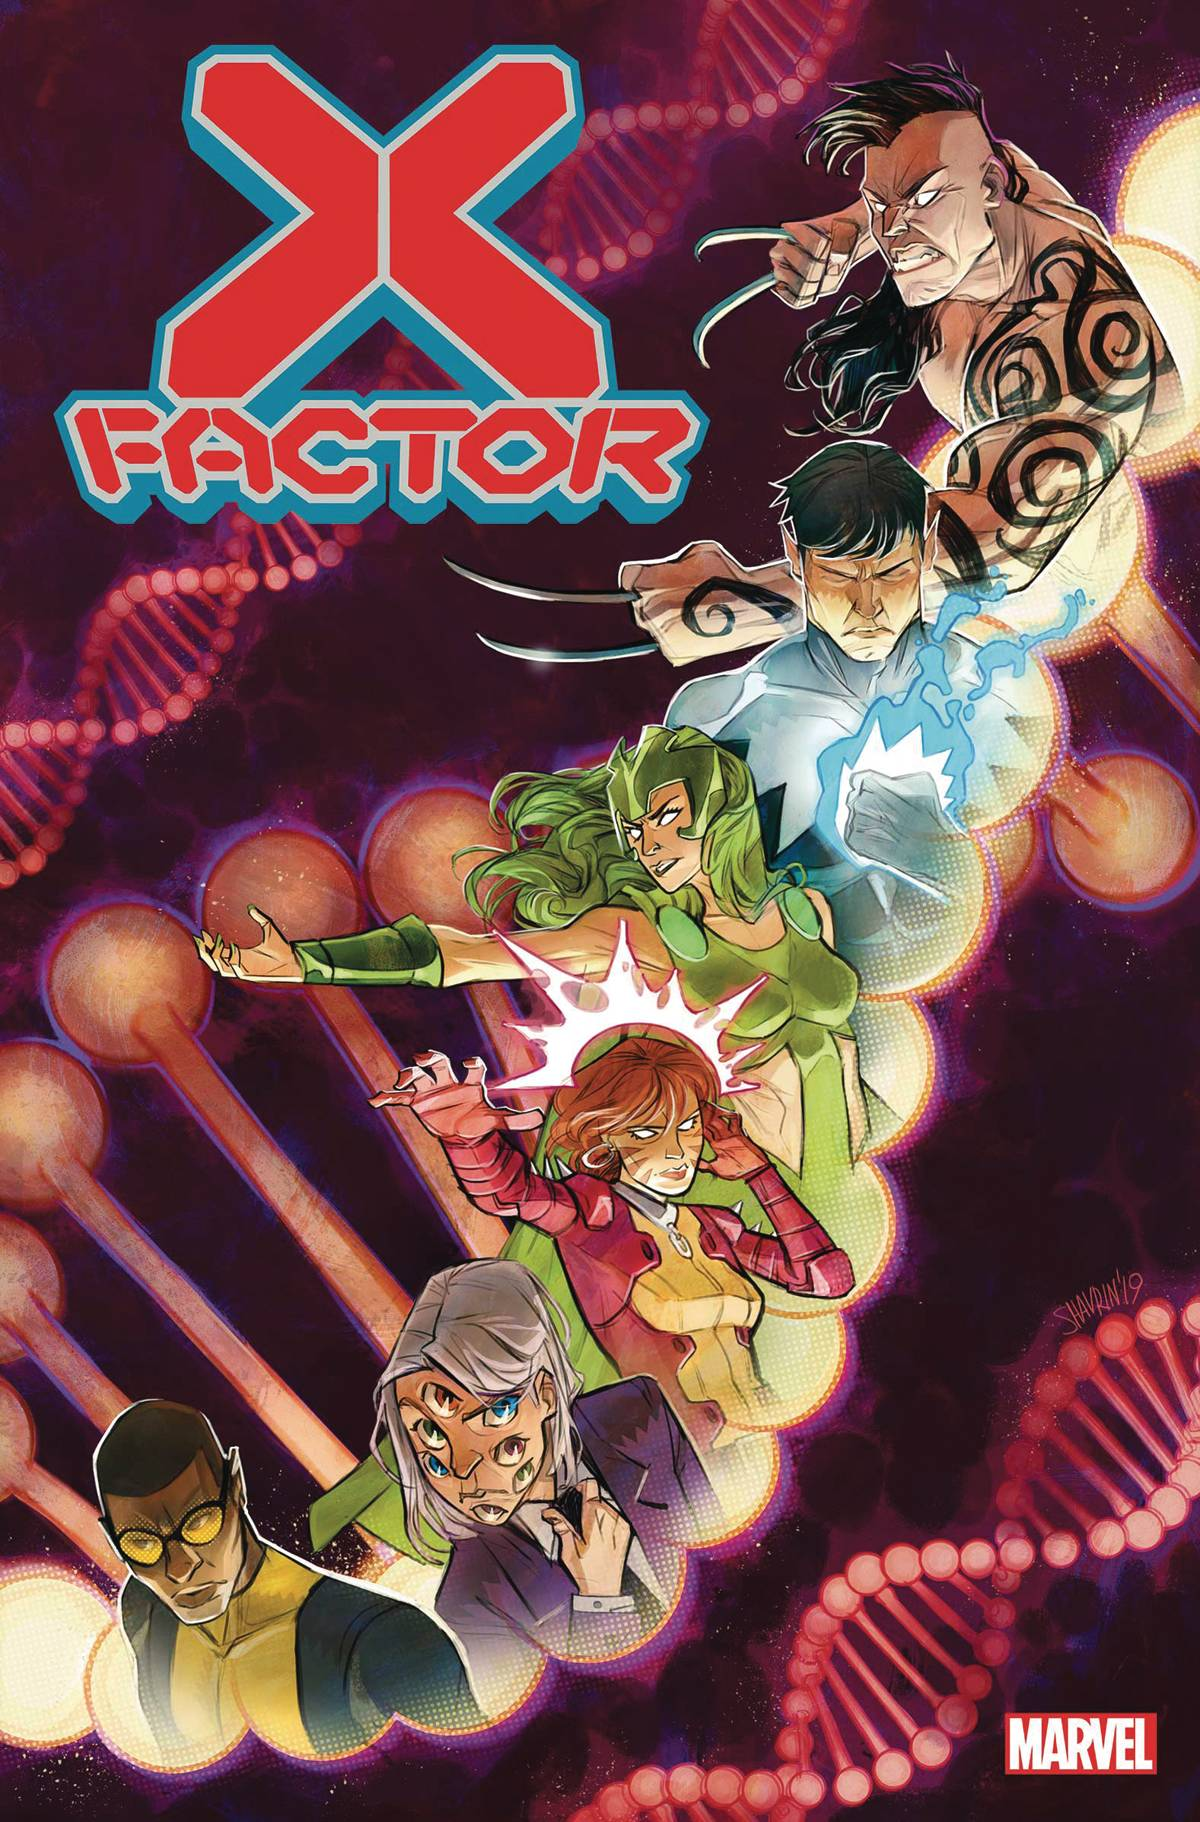 X-FACTOR #1 POSTER